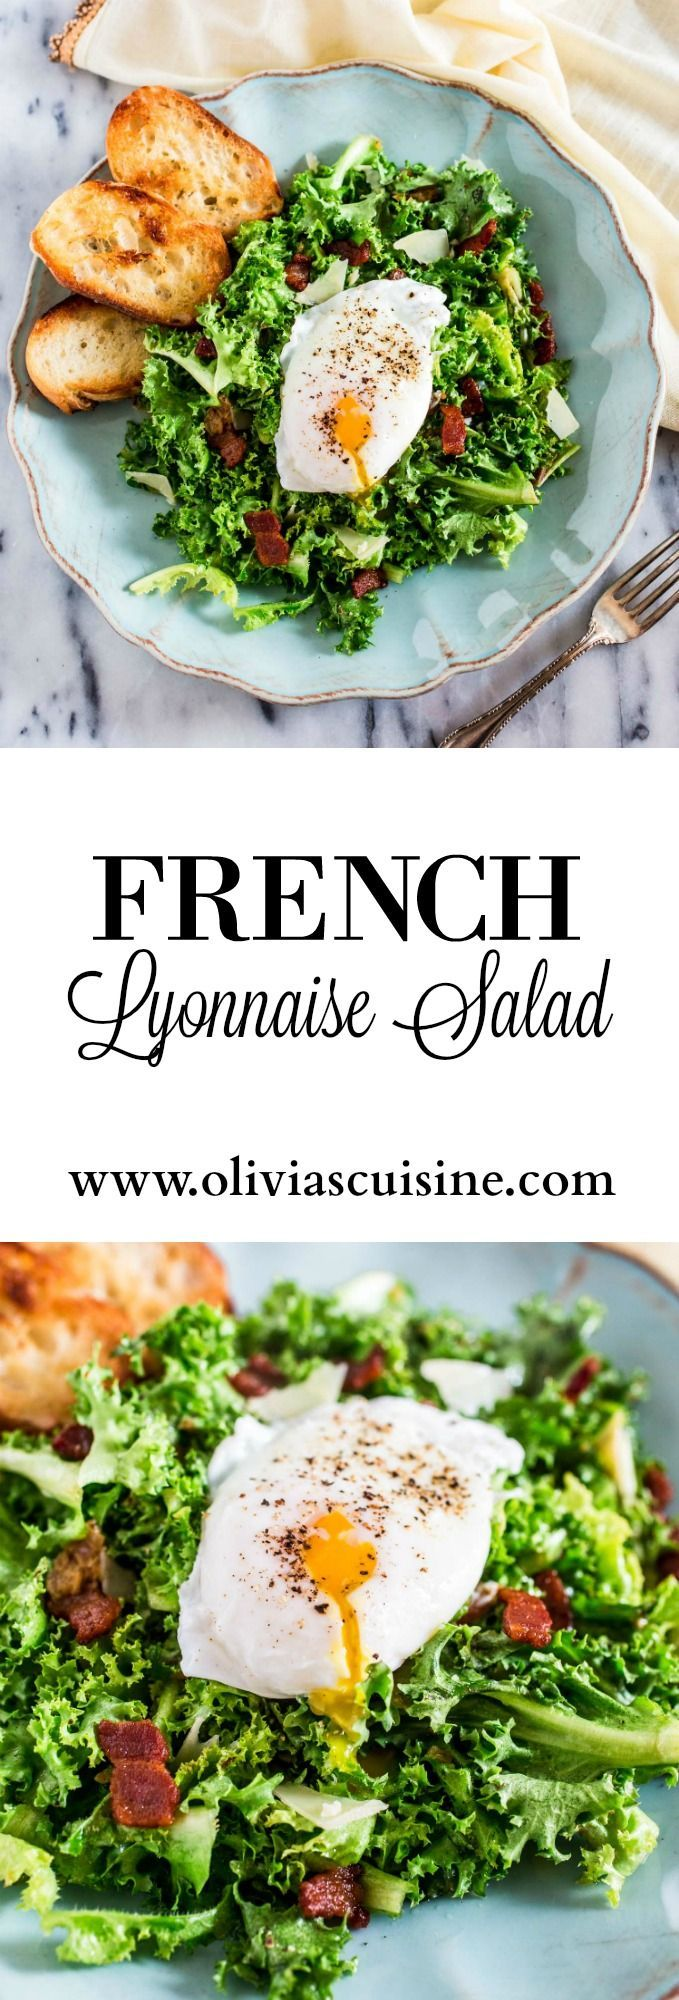 Lyonnaise Salad | http://www.oliviascuisine.com | This classic French salad, from Lyon, is made with frisée lettuce, bacon, a delicious shallot mustard vinaigrette and a poached egg.